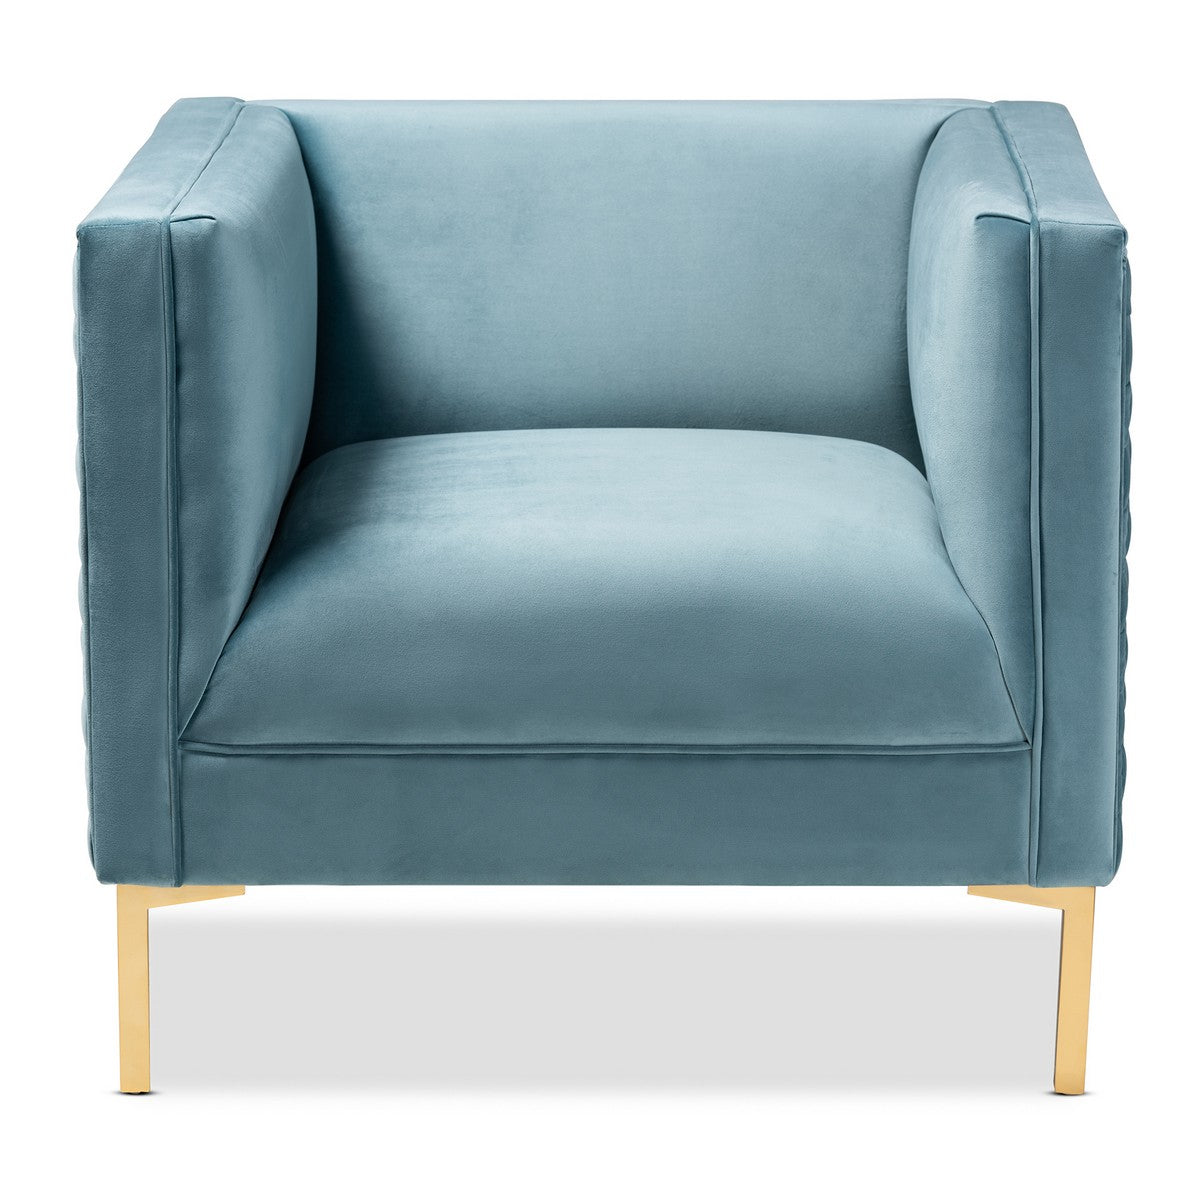 Baxton Studio Seraphin Glam and Luxe Light Blue Velvet Fabric Upholstered Gold Finished Armchair Baxton Studio-chairs-Minimal And Modern - 1